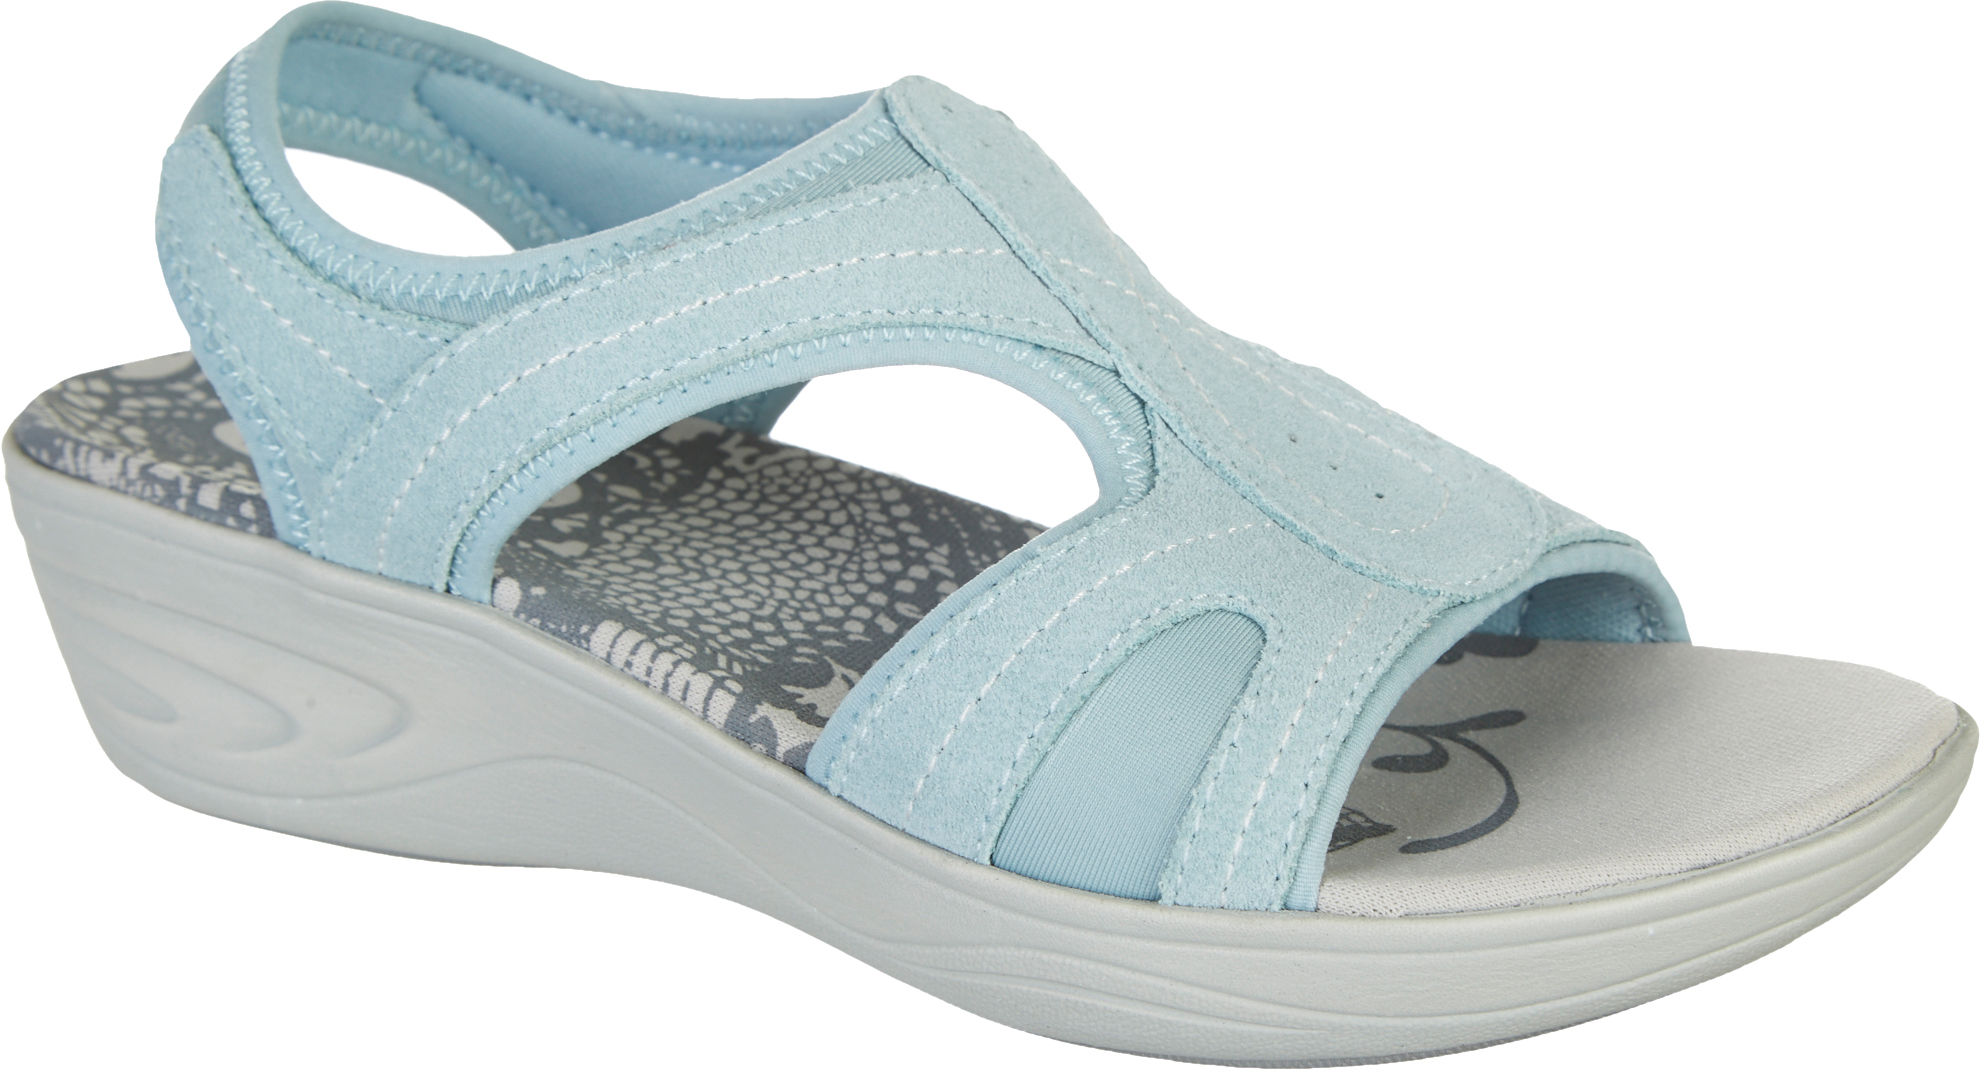 Easy Spirit Womens Manic Sandals Ebay